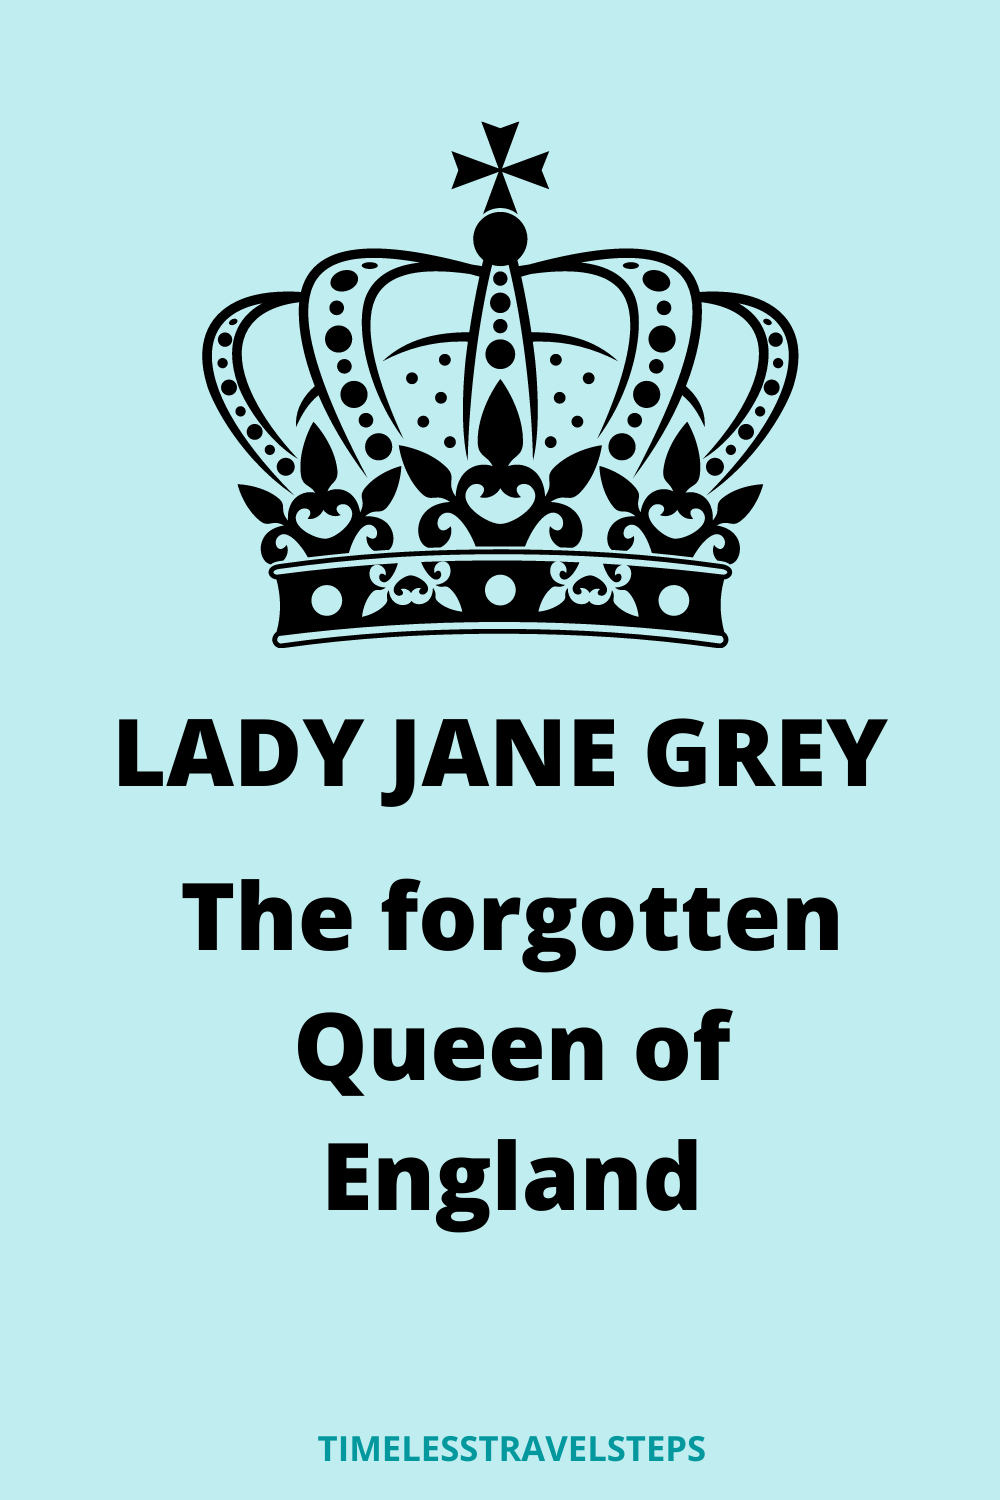 Learn more on the history of Britain to enrich your visit to landmarks in London and England-Lady Jane Grey the forgotten queen is a compelling story shrouded in political and religious conspiracies. via @GGeorgina_timelesstravelsteps/